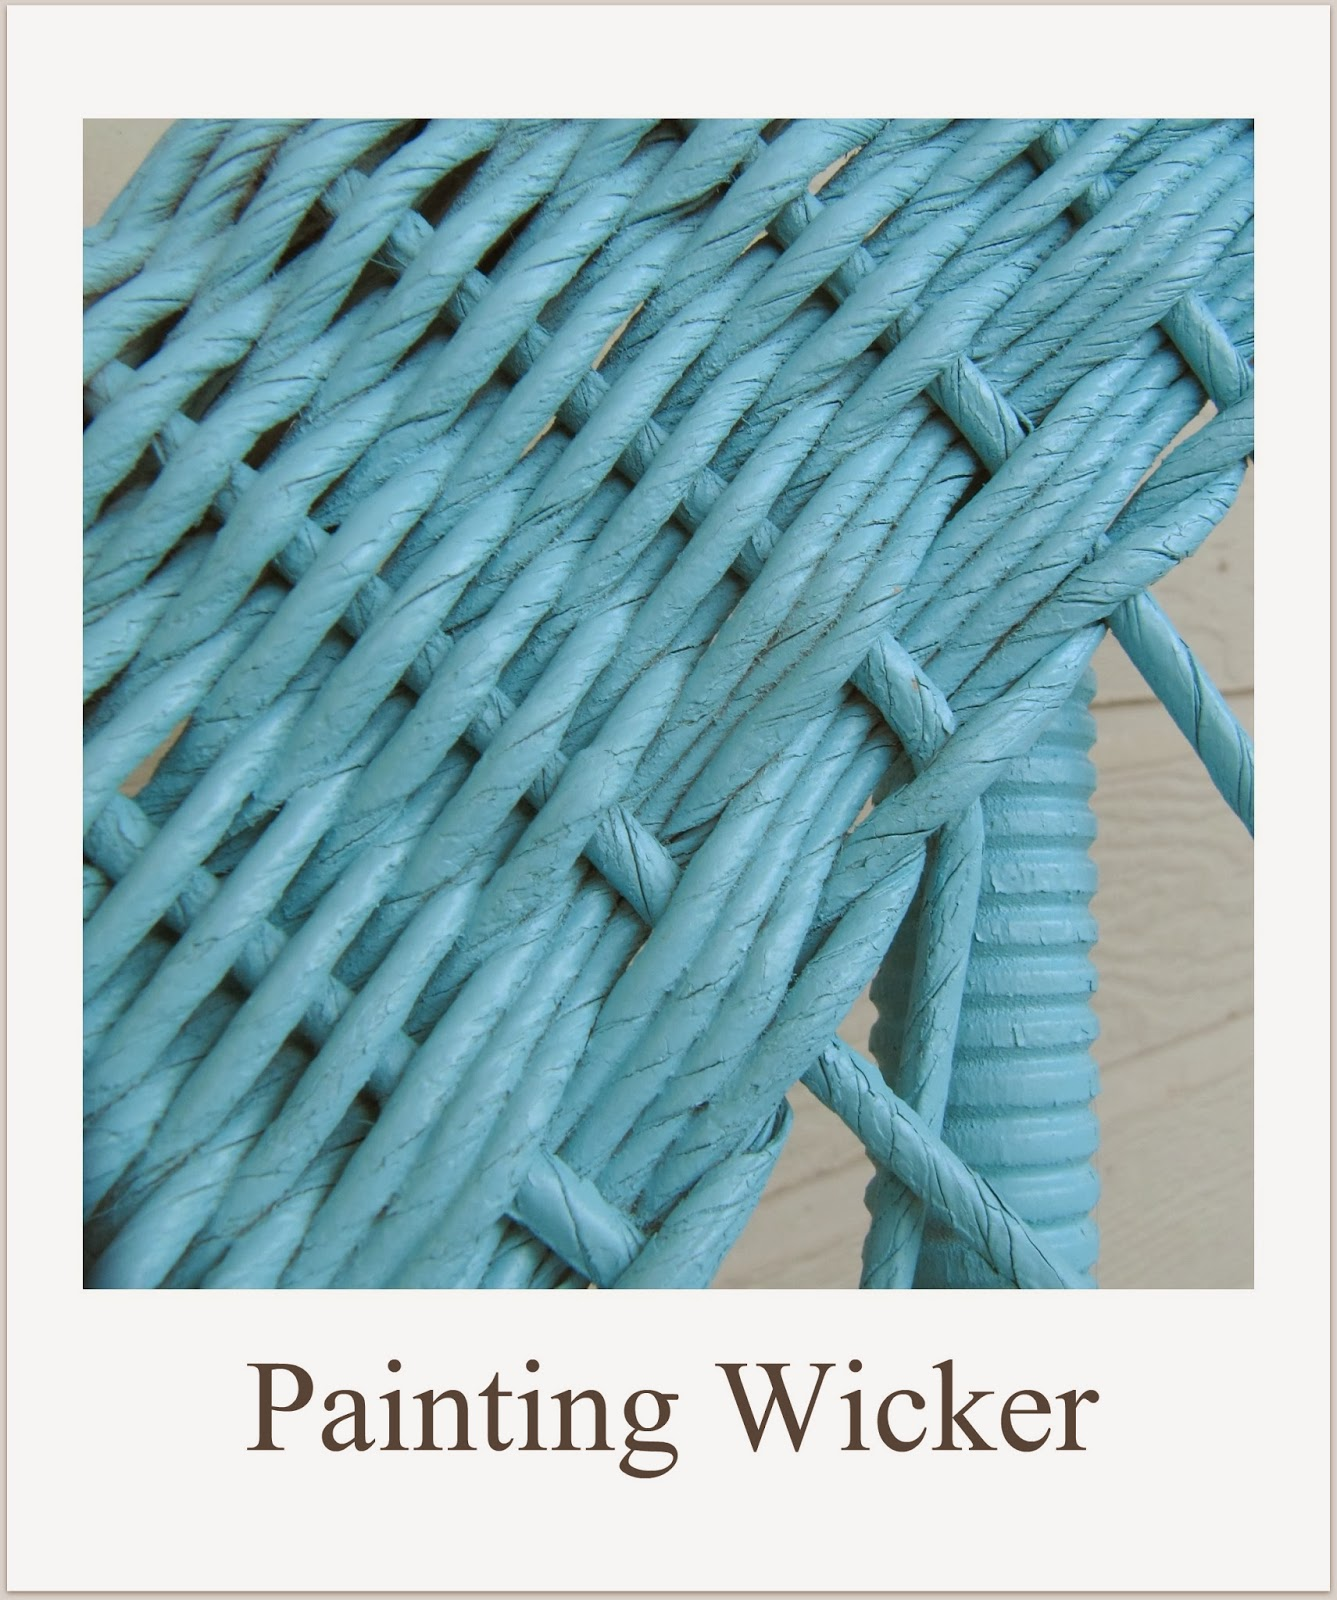 http://thewickerhouse.blogspot.com/2013/08/painting-wicker.html